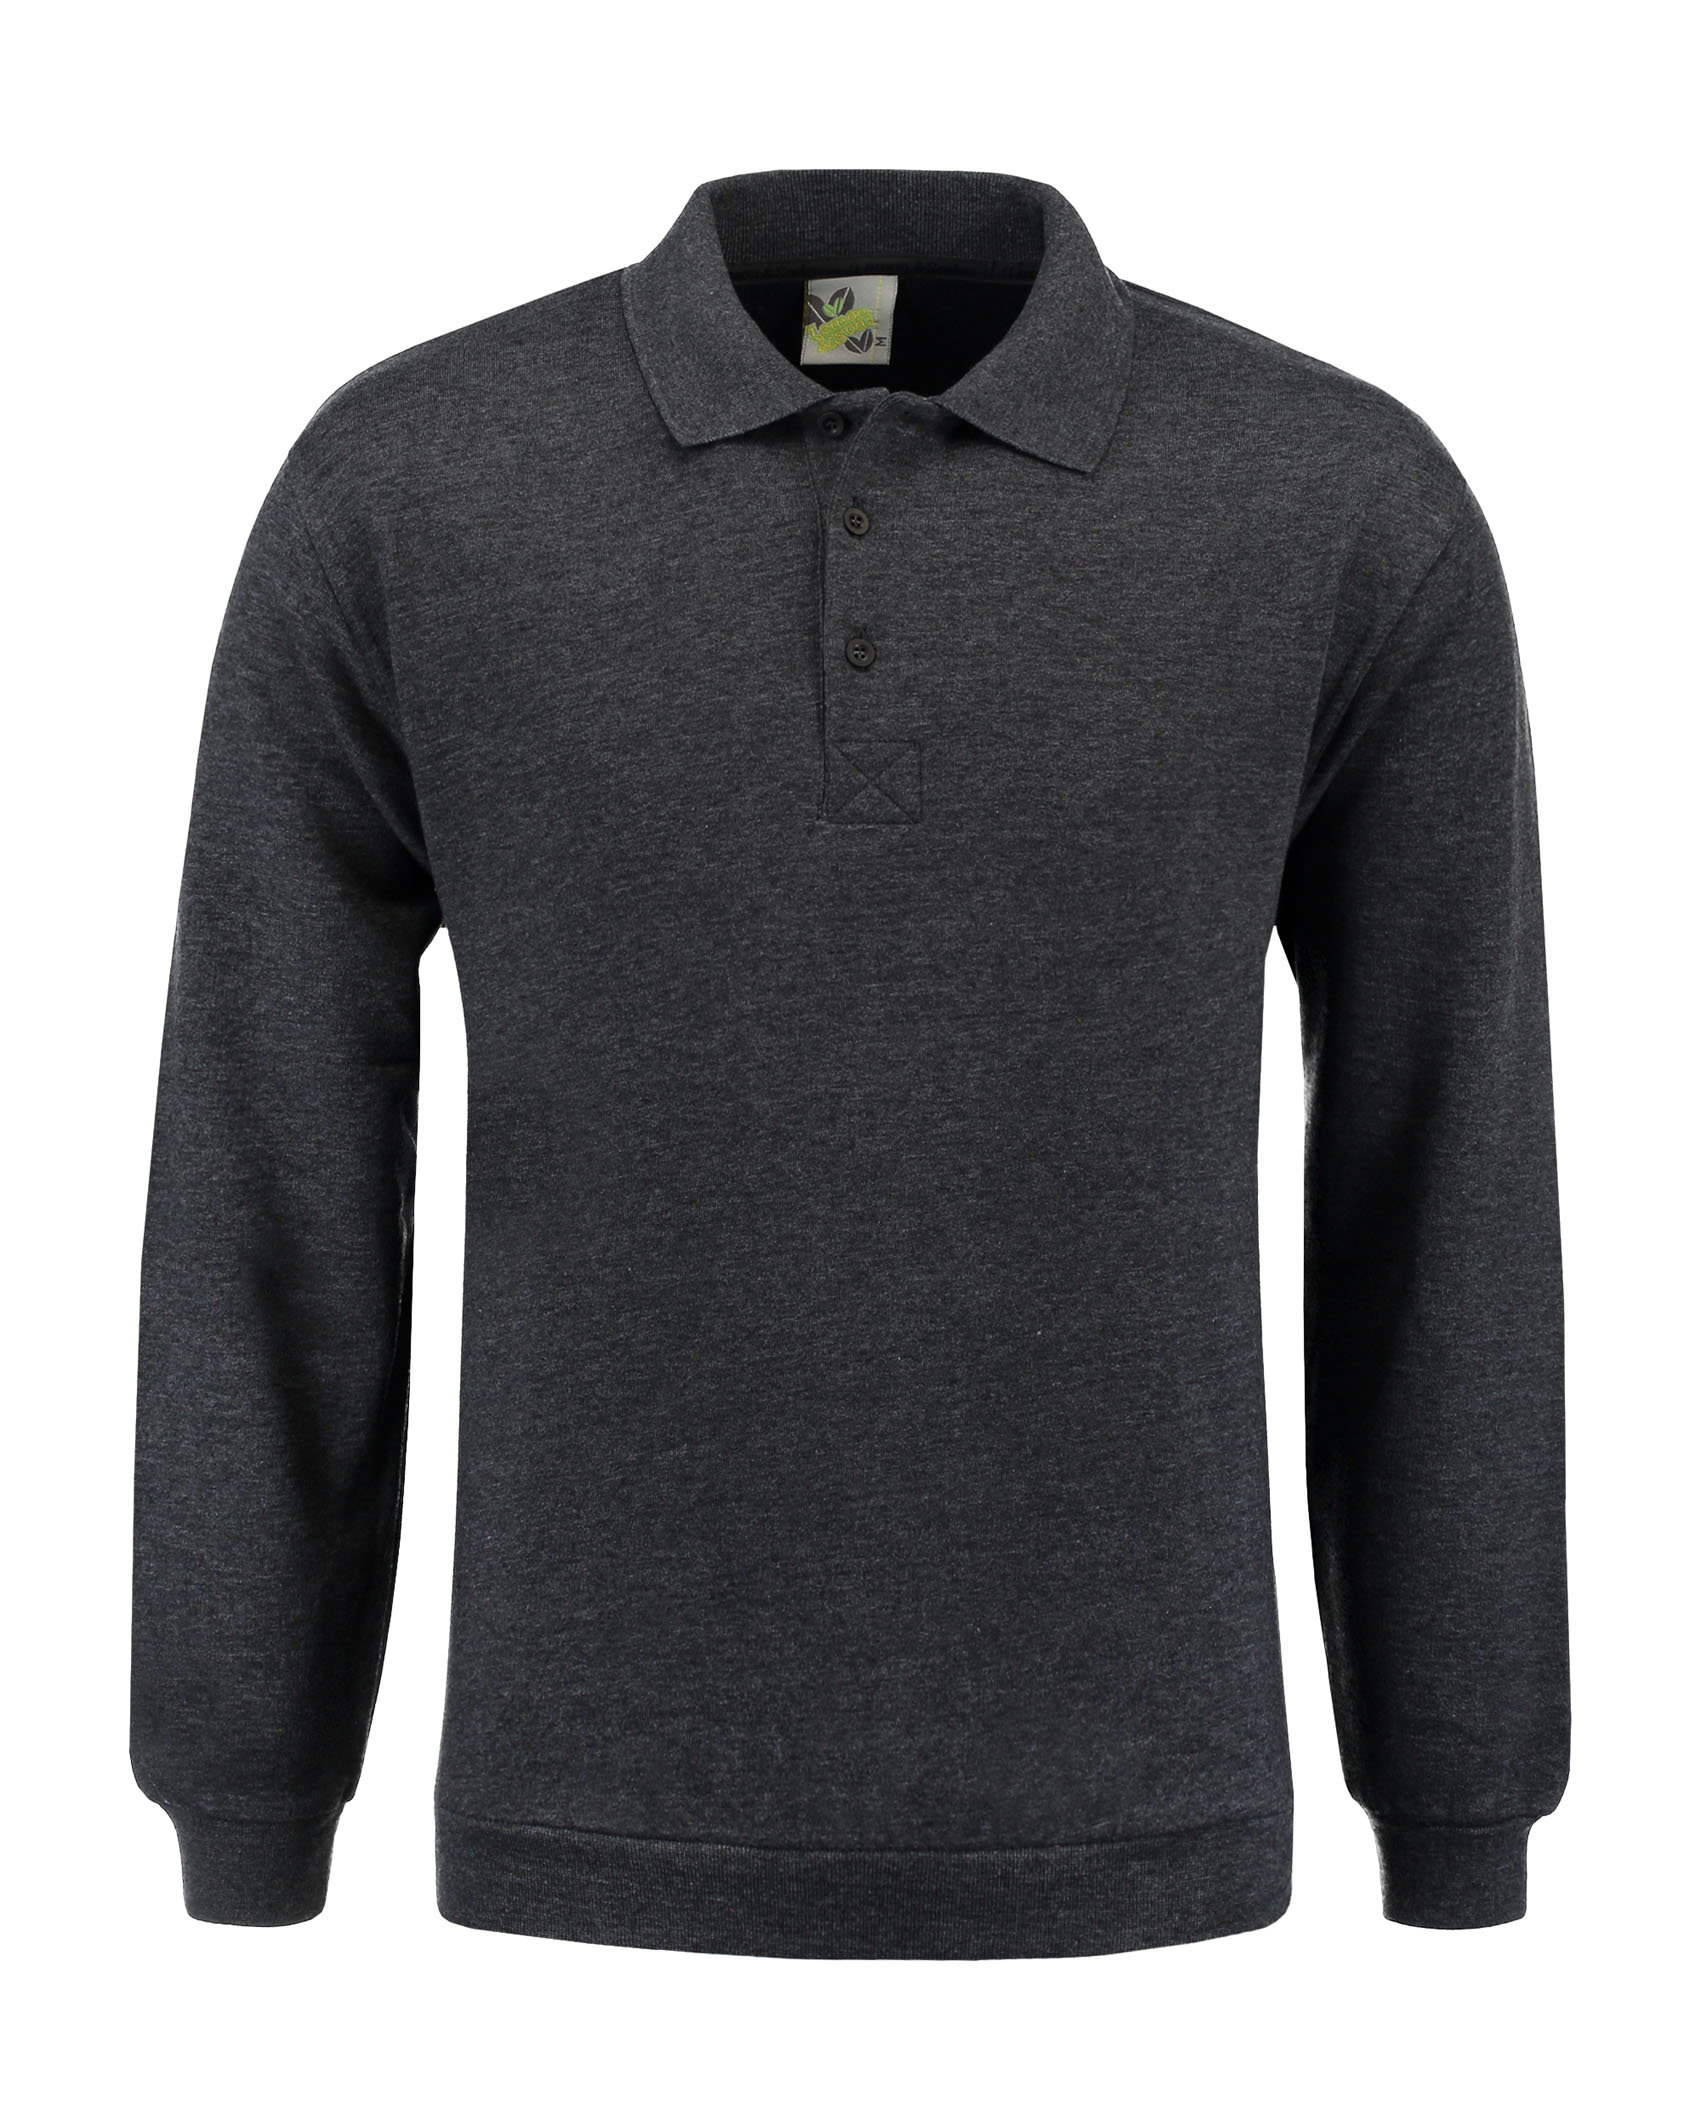 L&S Sweater Polo for him